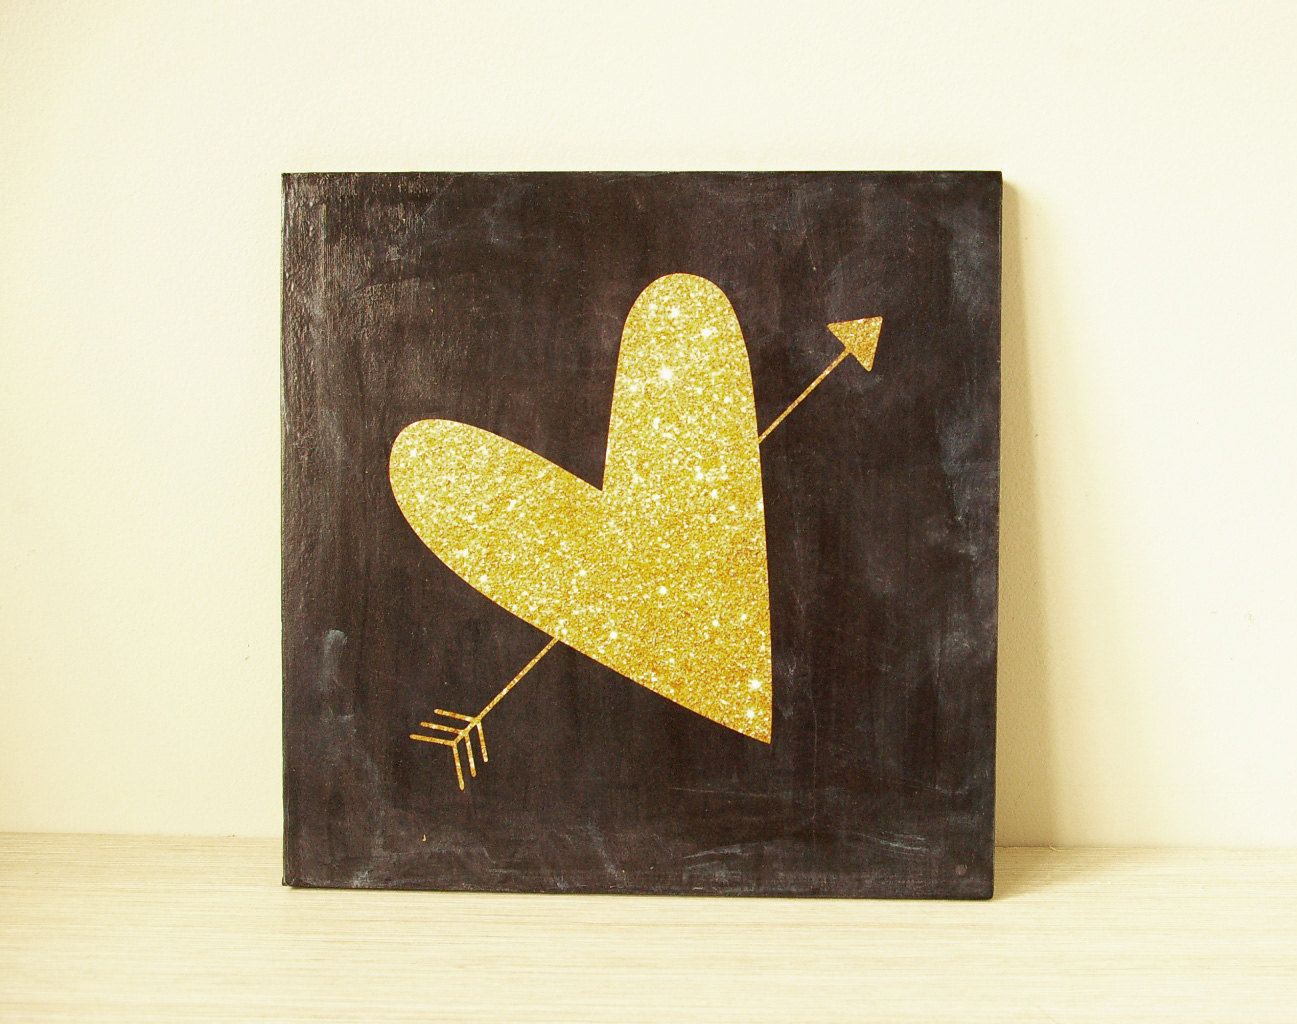 Wooden art block 8x8 collage wall decor decoupage mixed media home ...